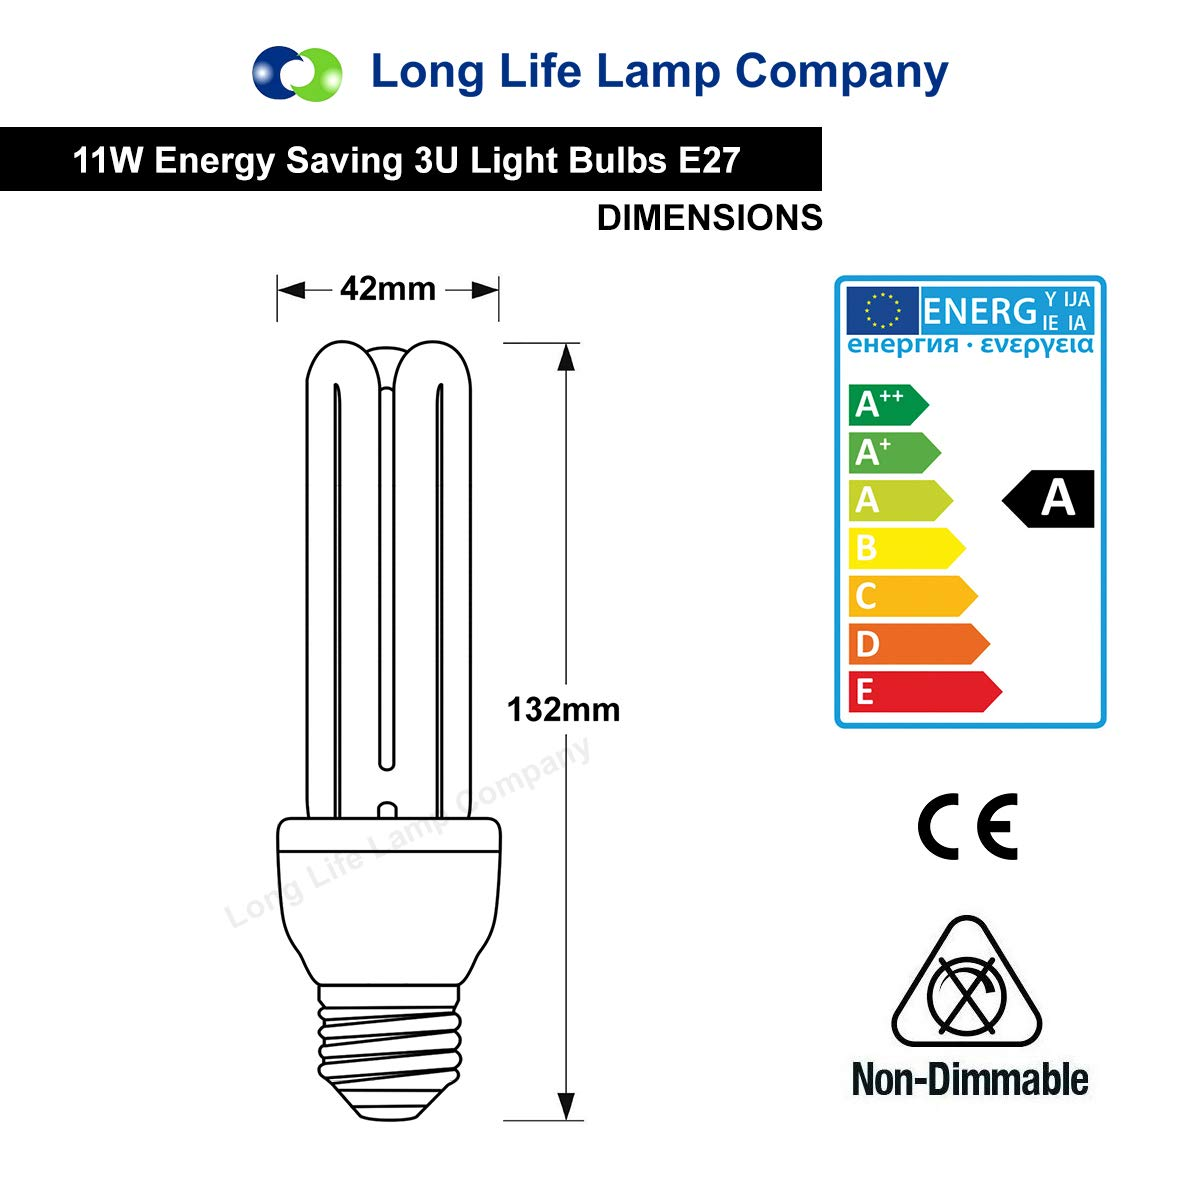 In Lamps Fluorescent Light Wiring Diagram Compact Fluorescent Light